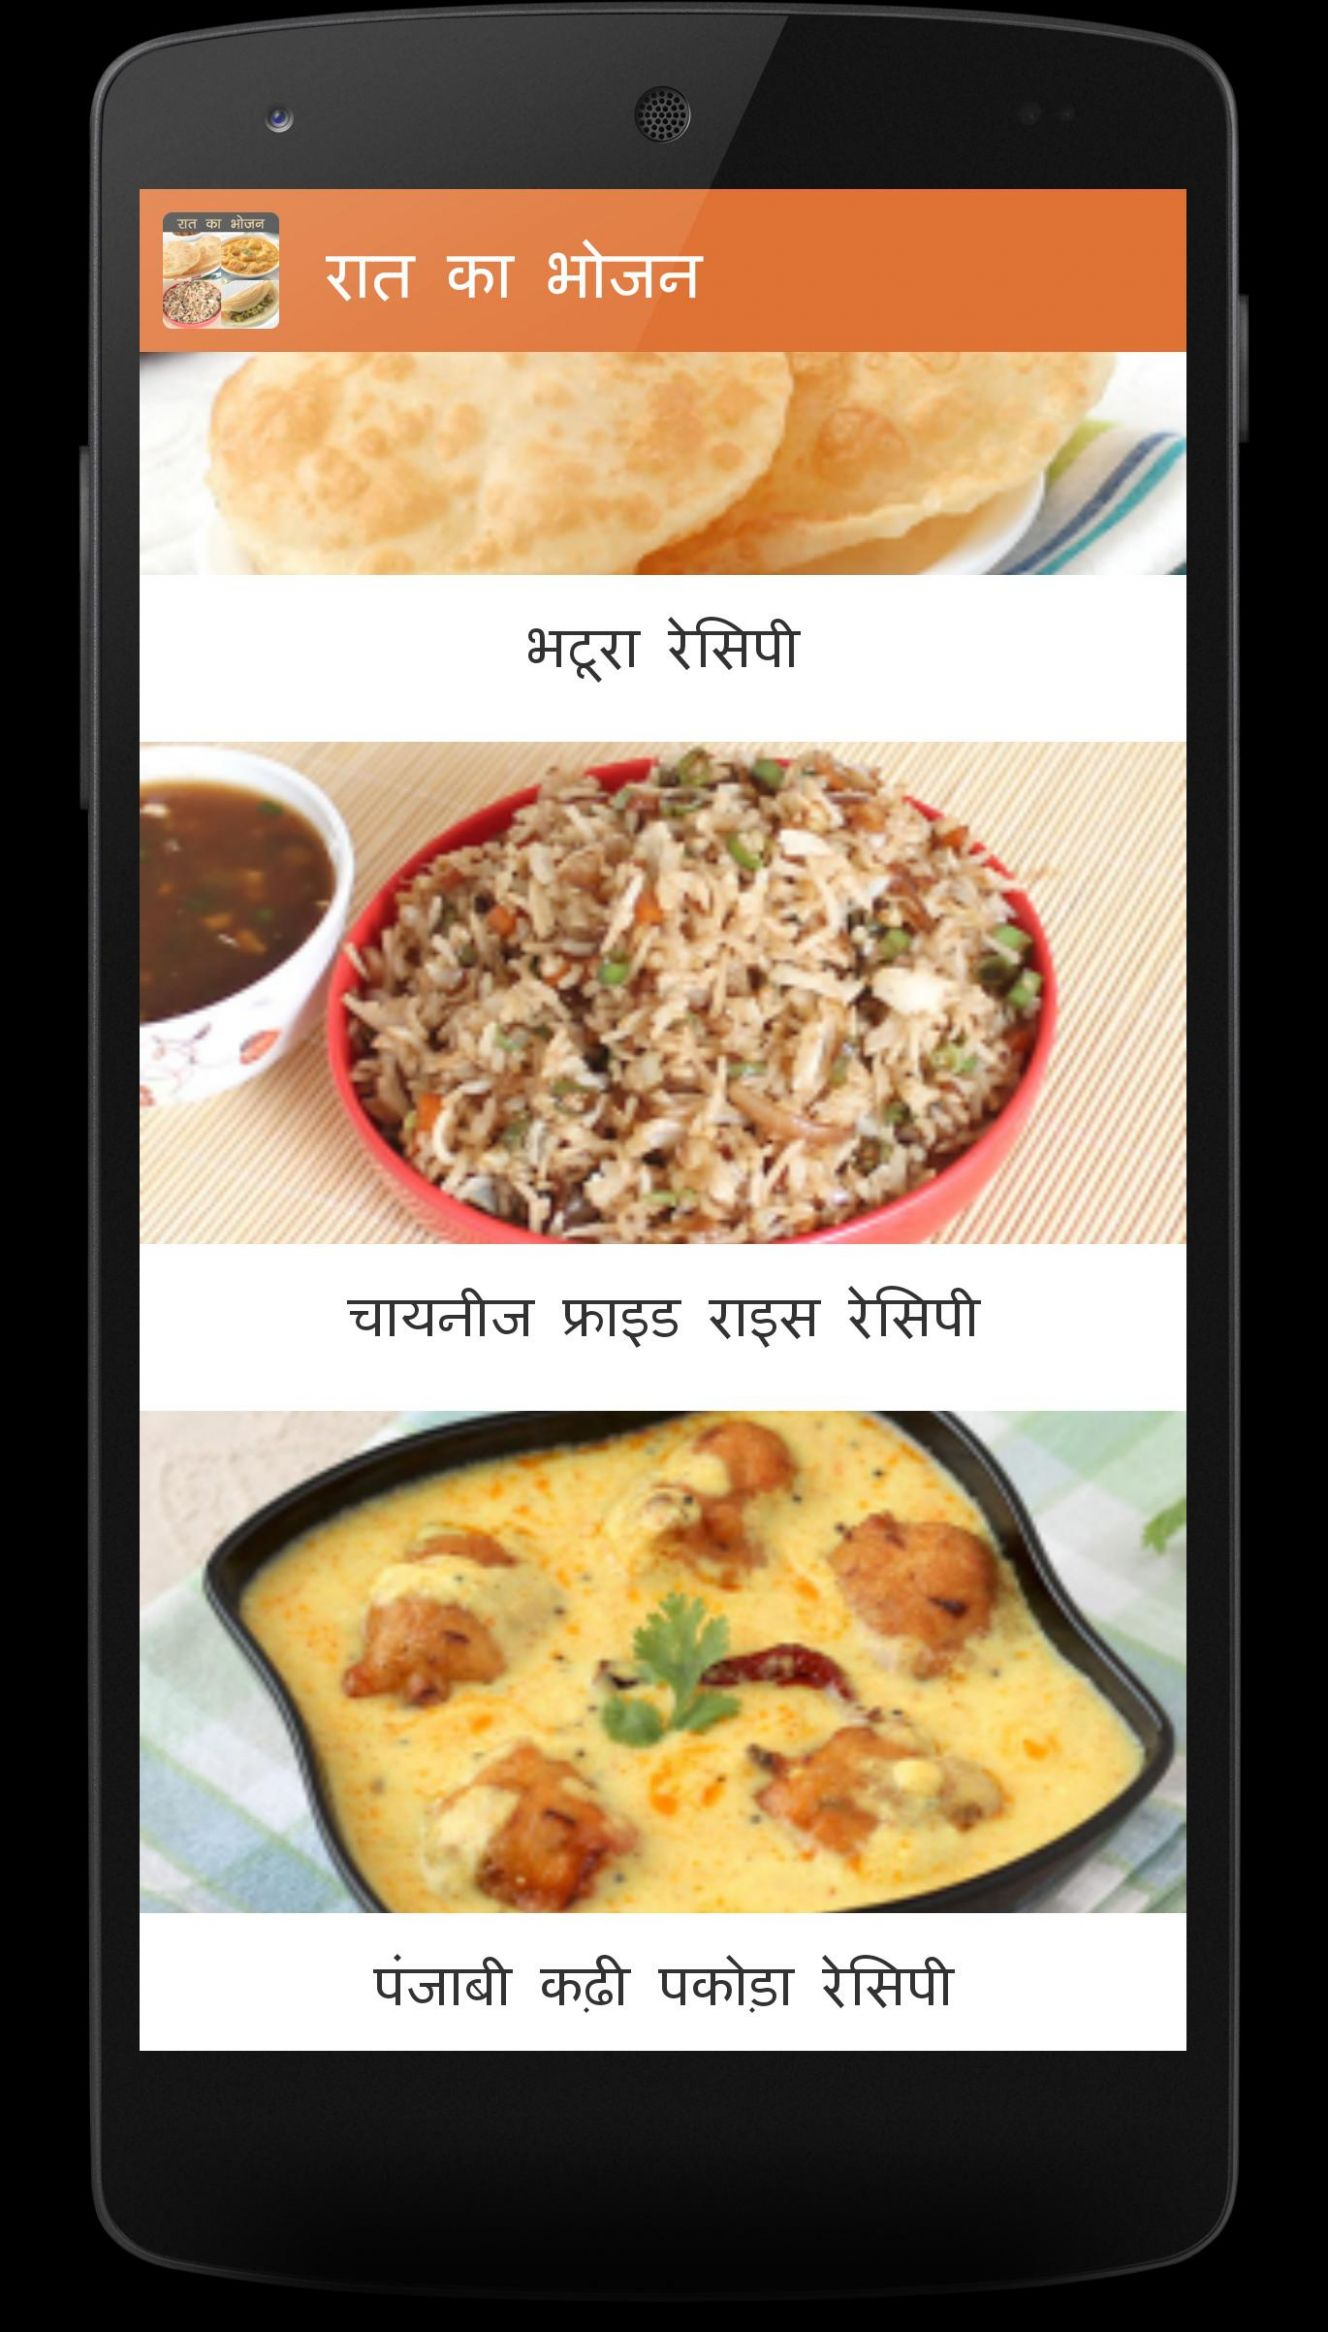 Raat ka Bhojan (Dinner) Recipes in Hindi for Android - APK Download